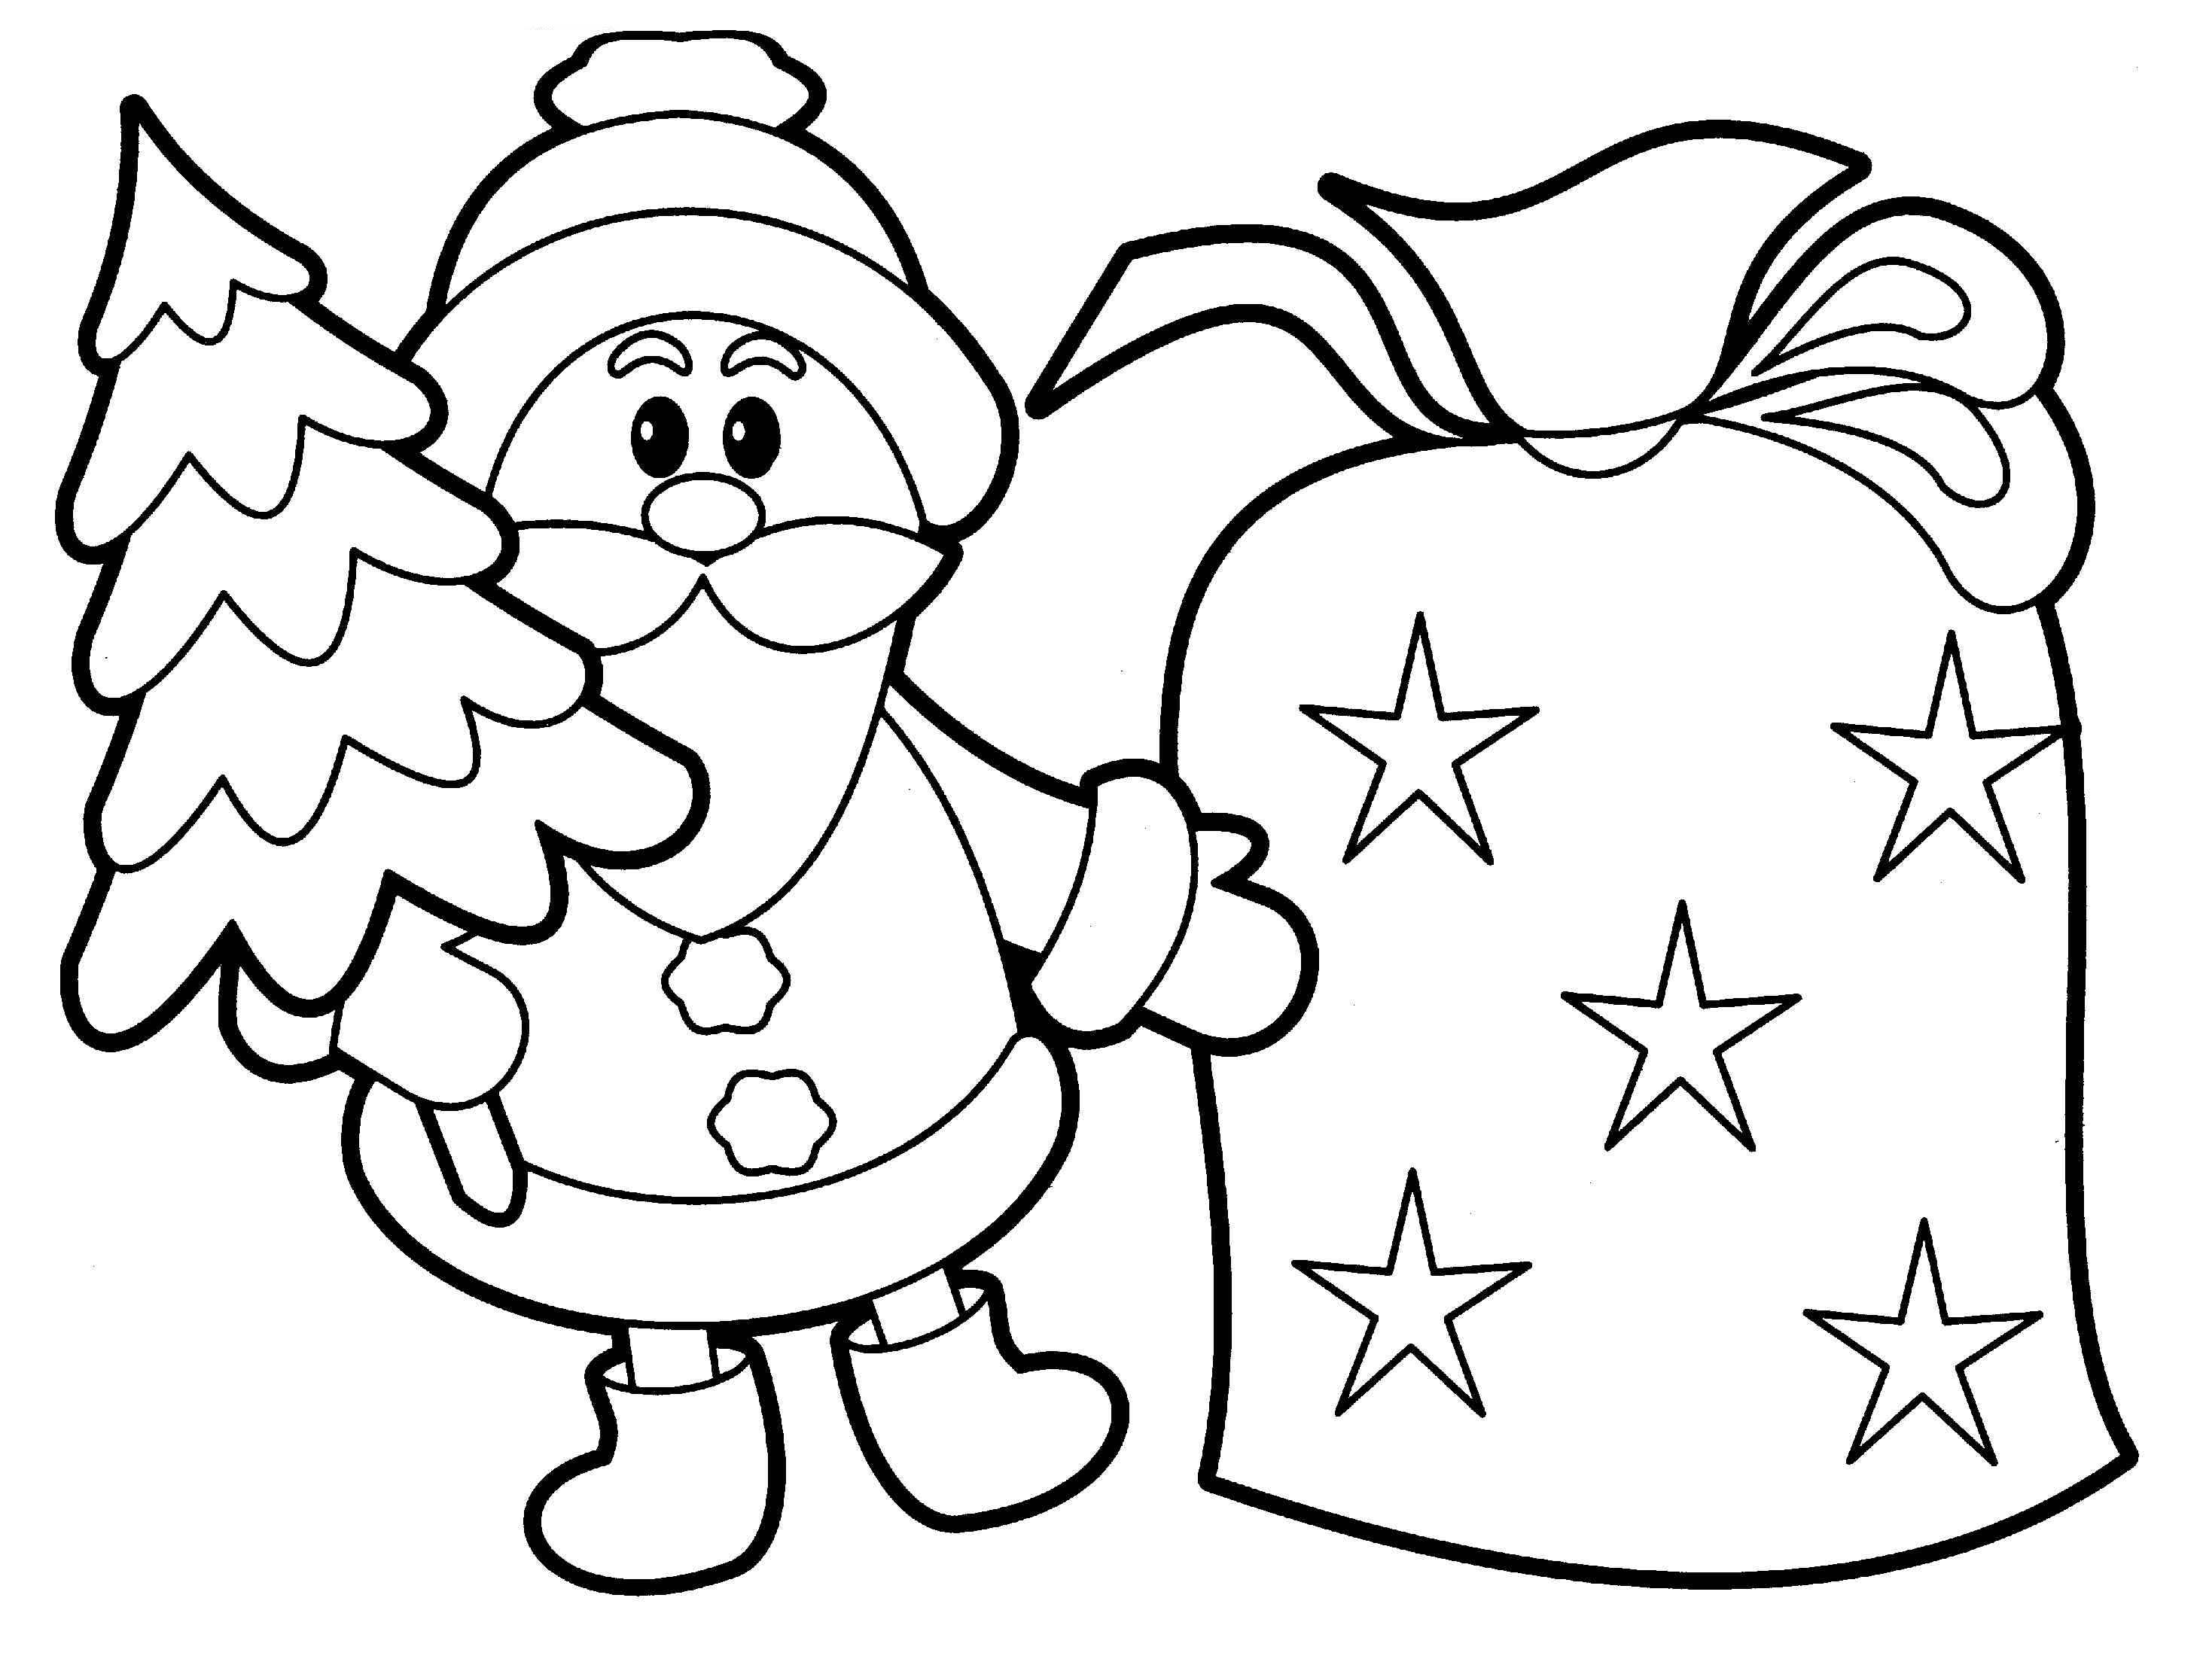 coloring christmas pages 5 christmas coloring pages your kids will love pages coloring christmas